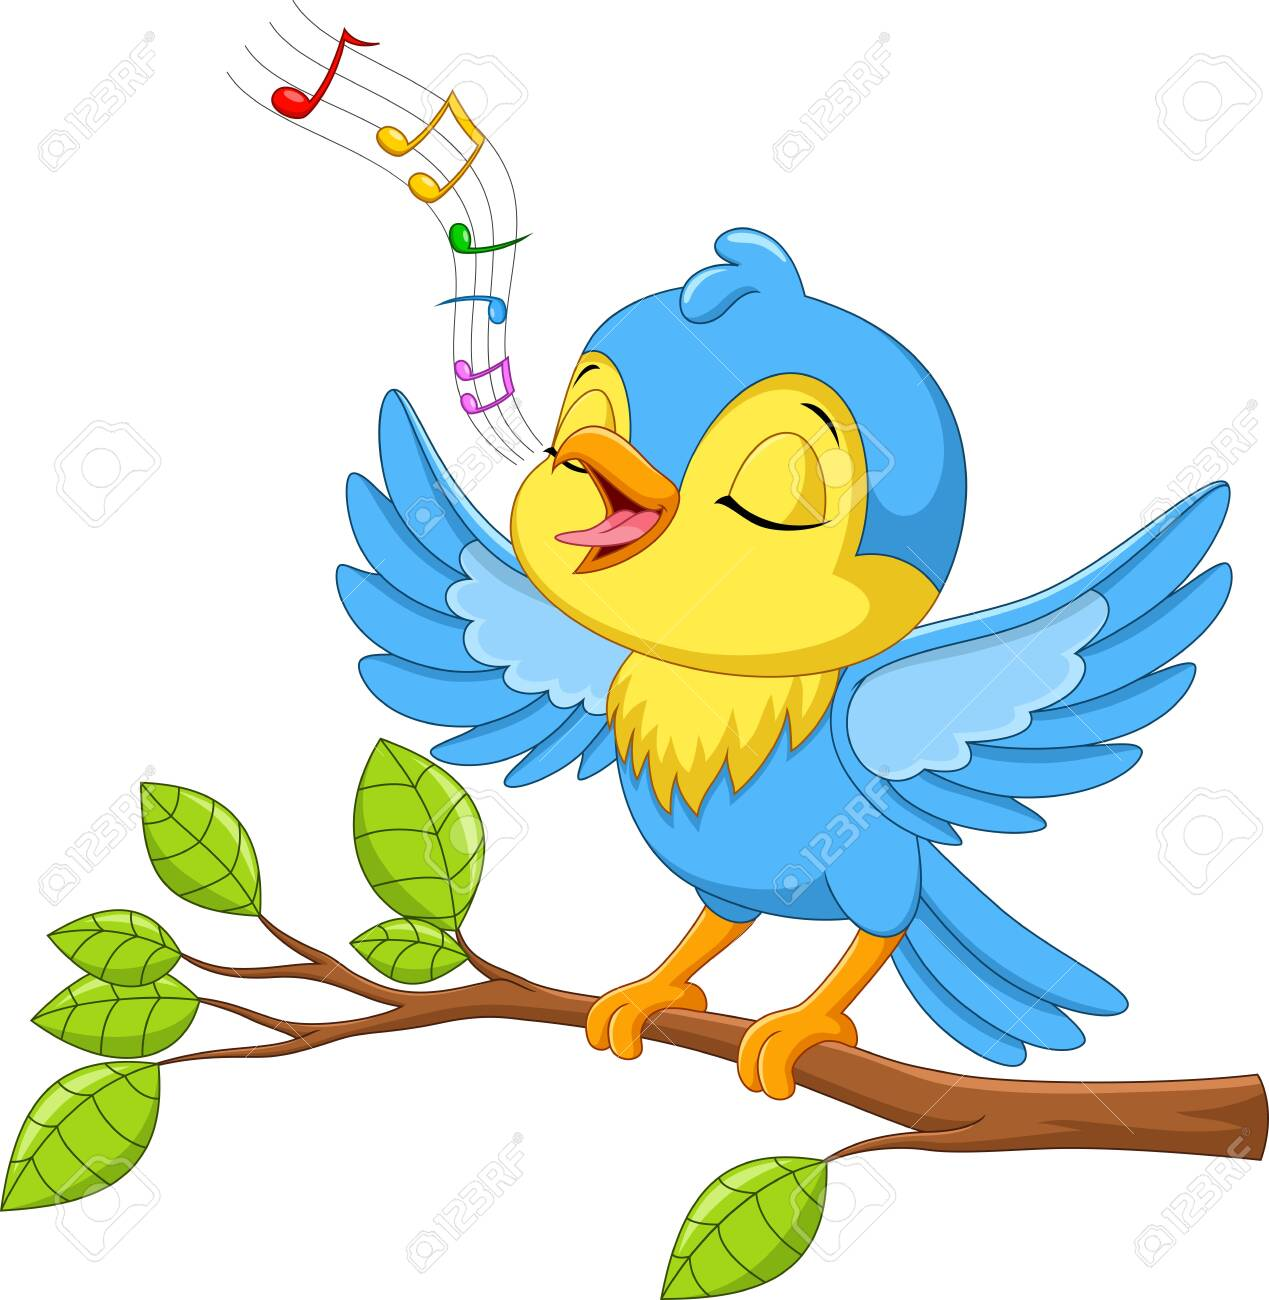 Vector illustration of Cute little bird sings on a tree branch isolated on white background - 123744257